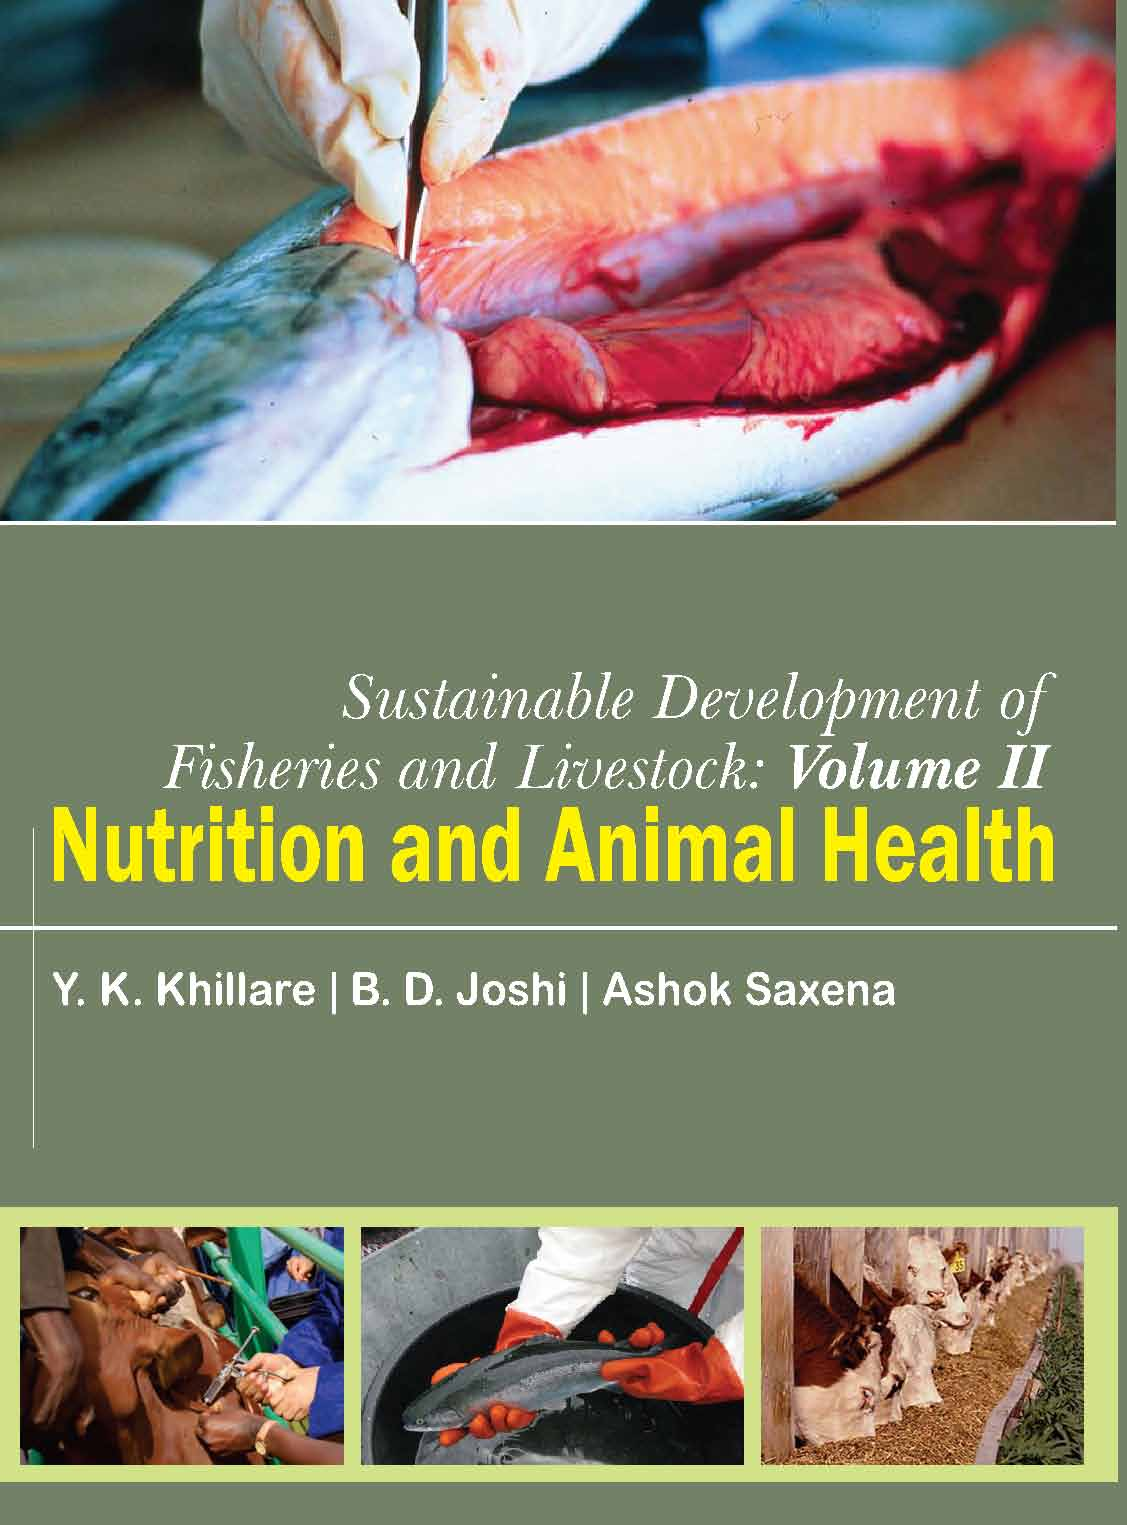 Sustainable Development of Fisheries and Livestock :Nutrition & Animal Health Vol II